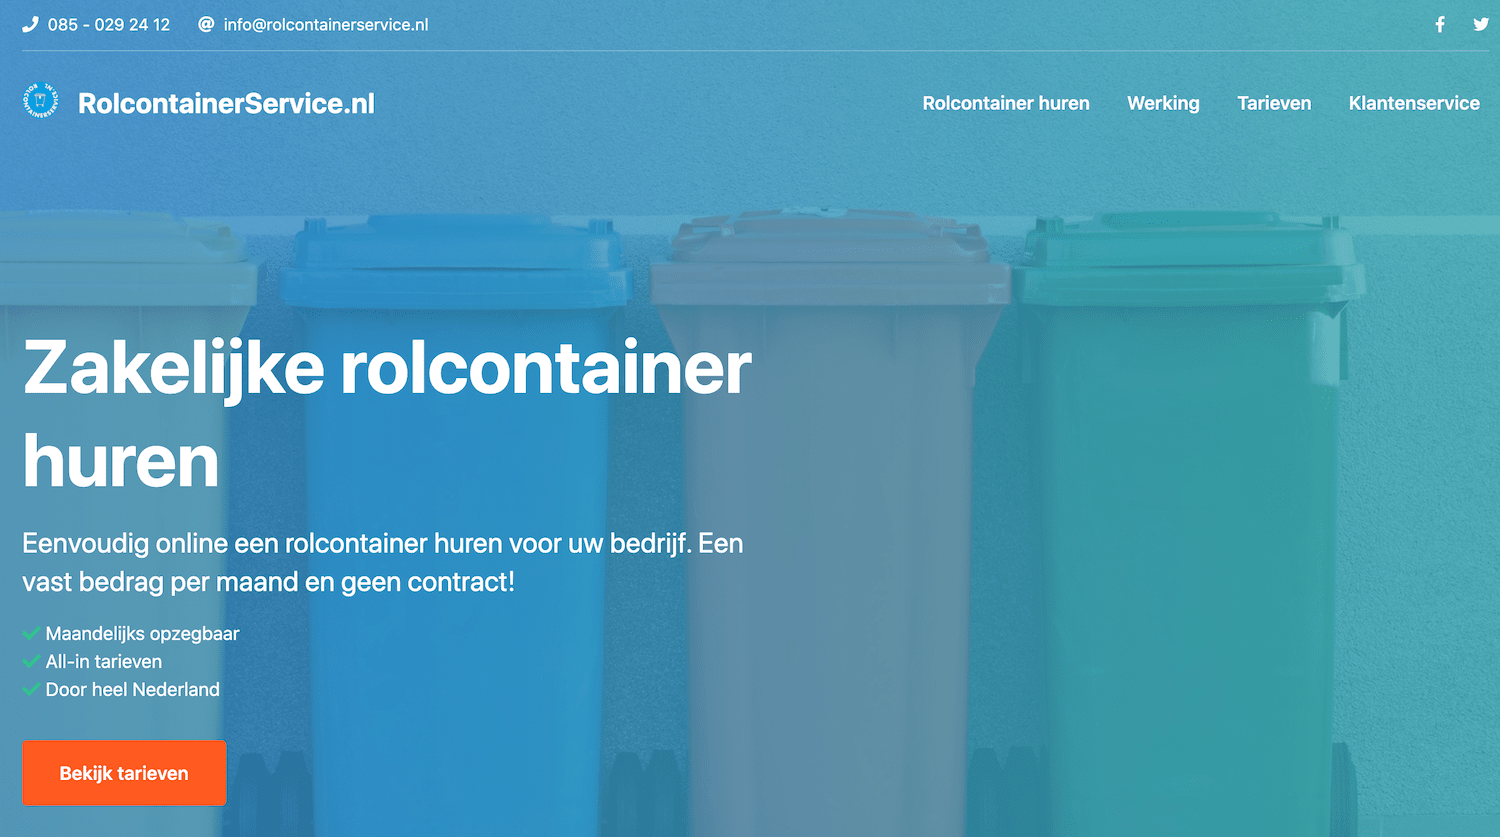 Informatie over RolcontainerService.nl